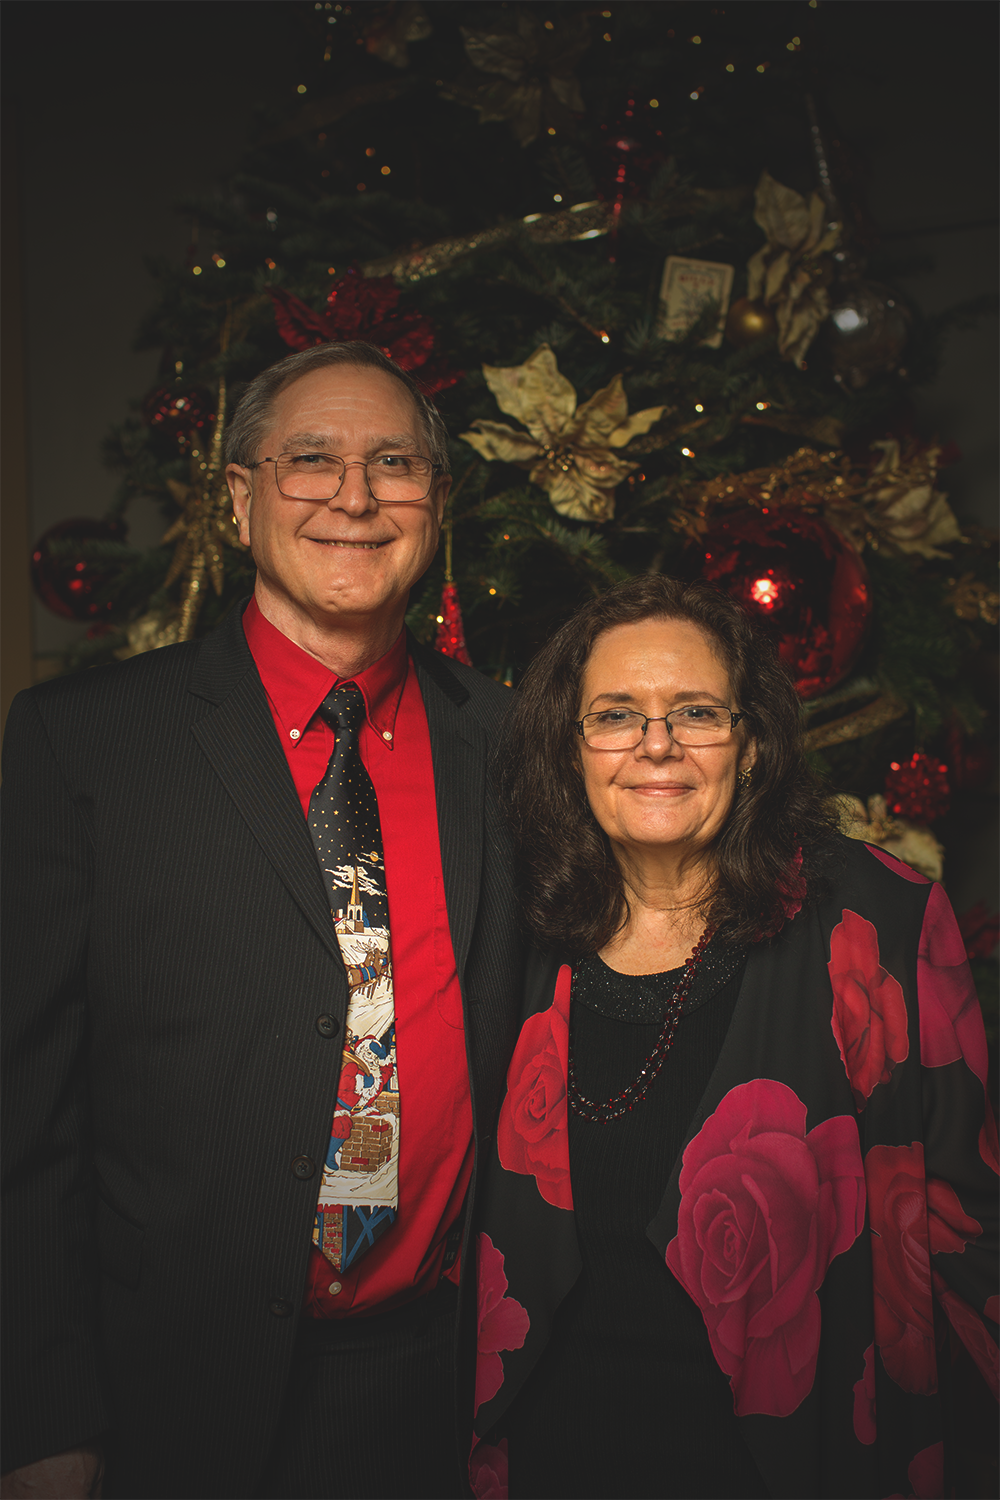 epproperties-vancouver-washington-xmas-party-photolga31.png